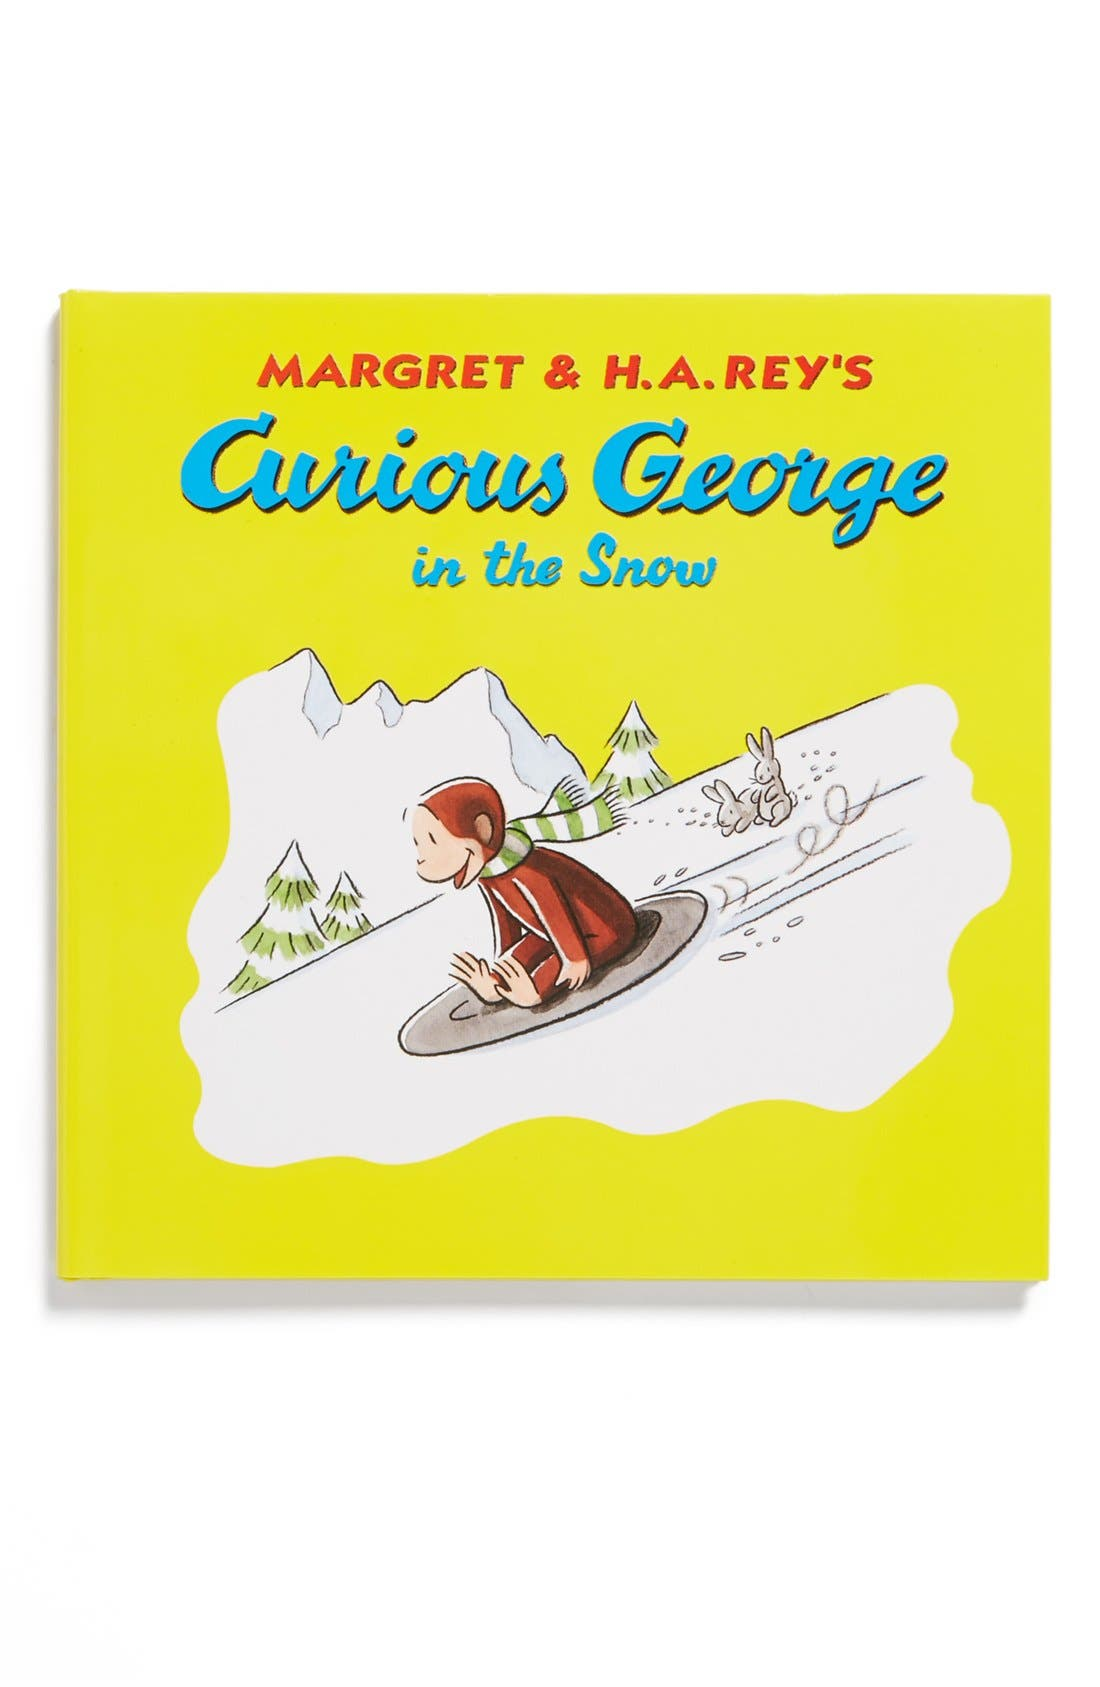 Main Image - Margret & H.A. Rey's 'Curious George in the Snow' Book